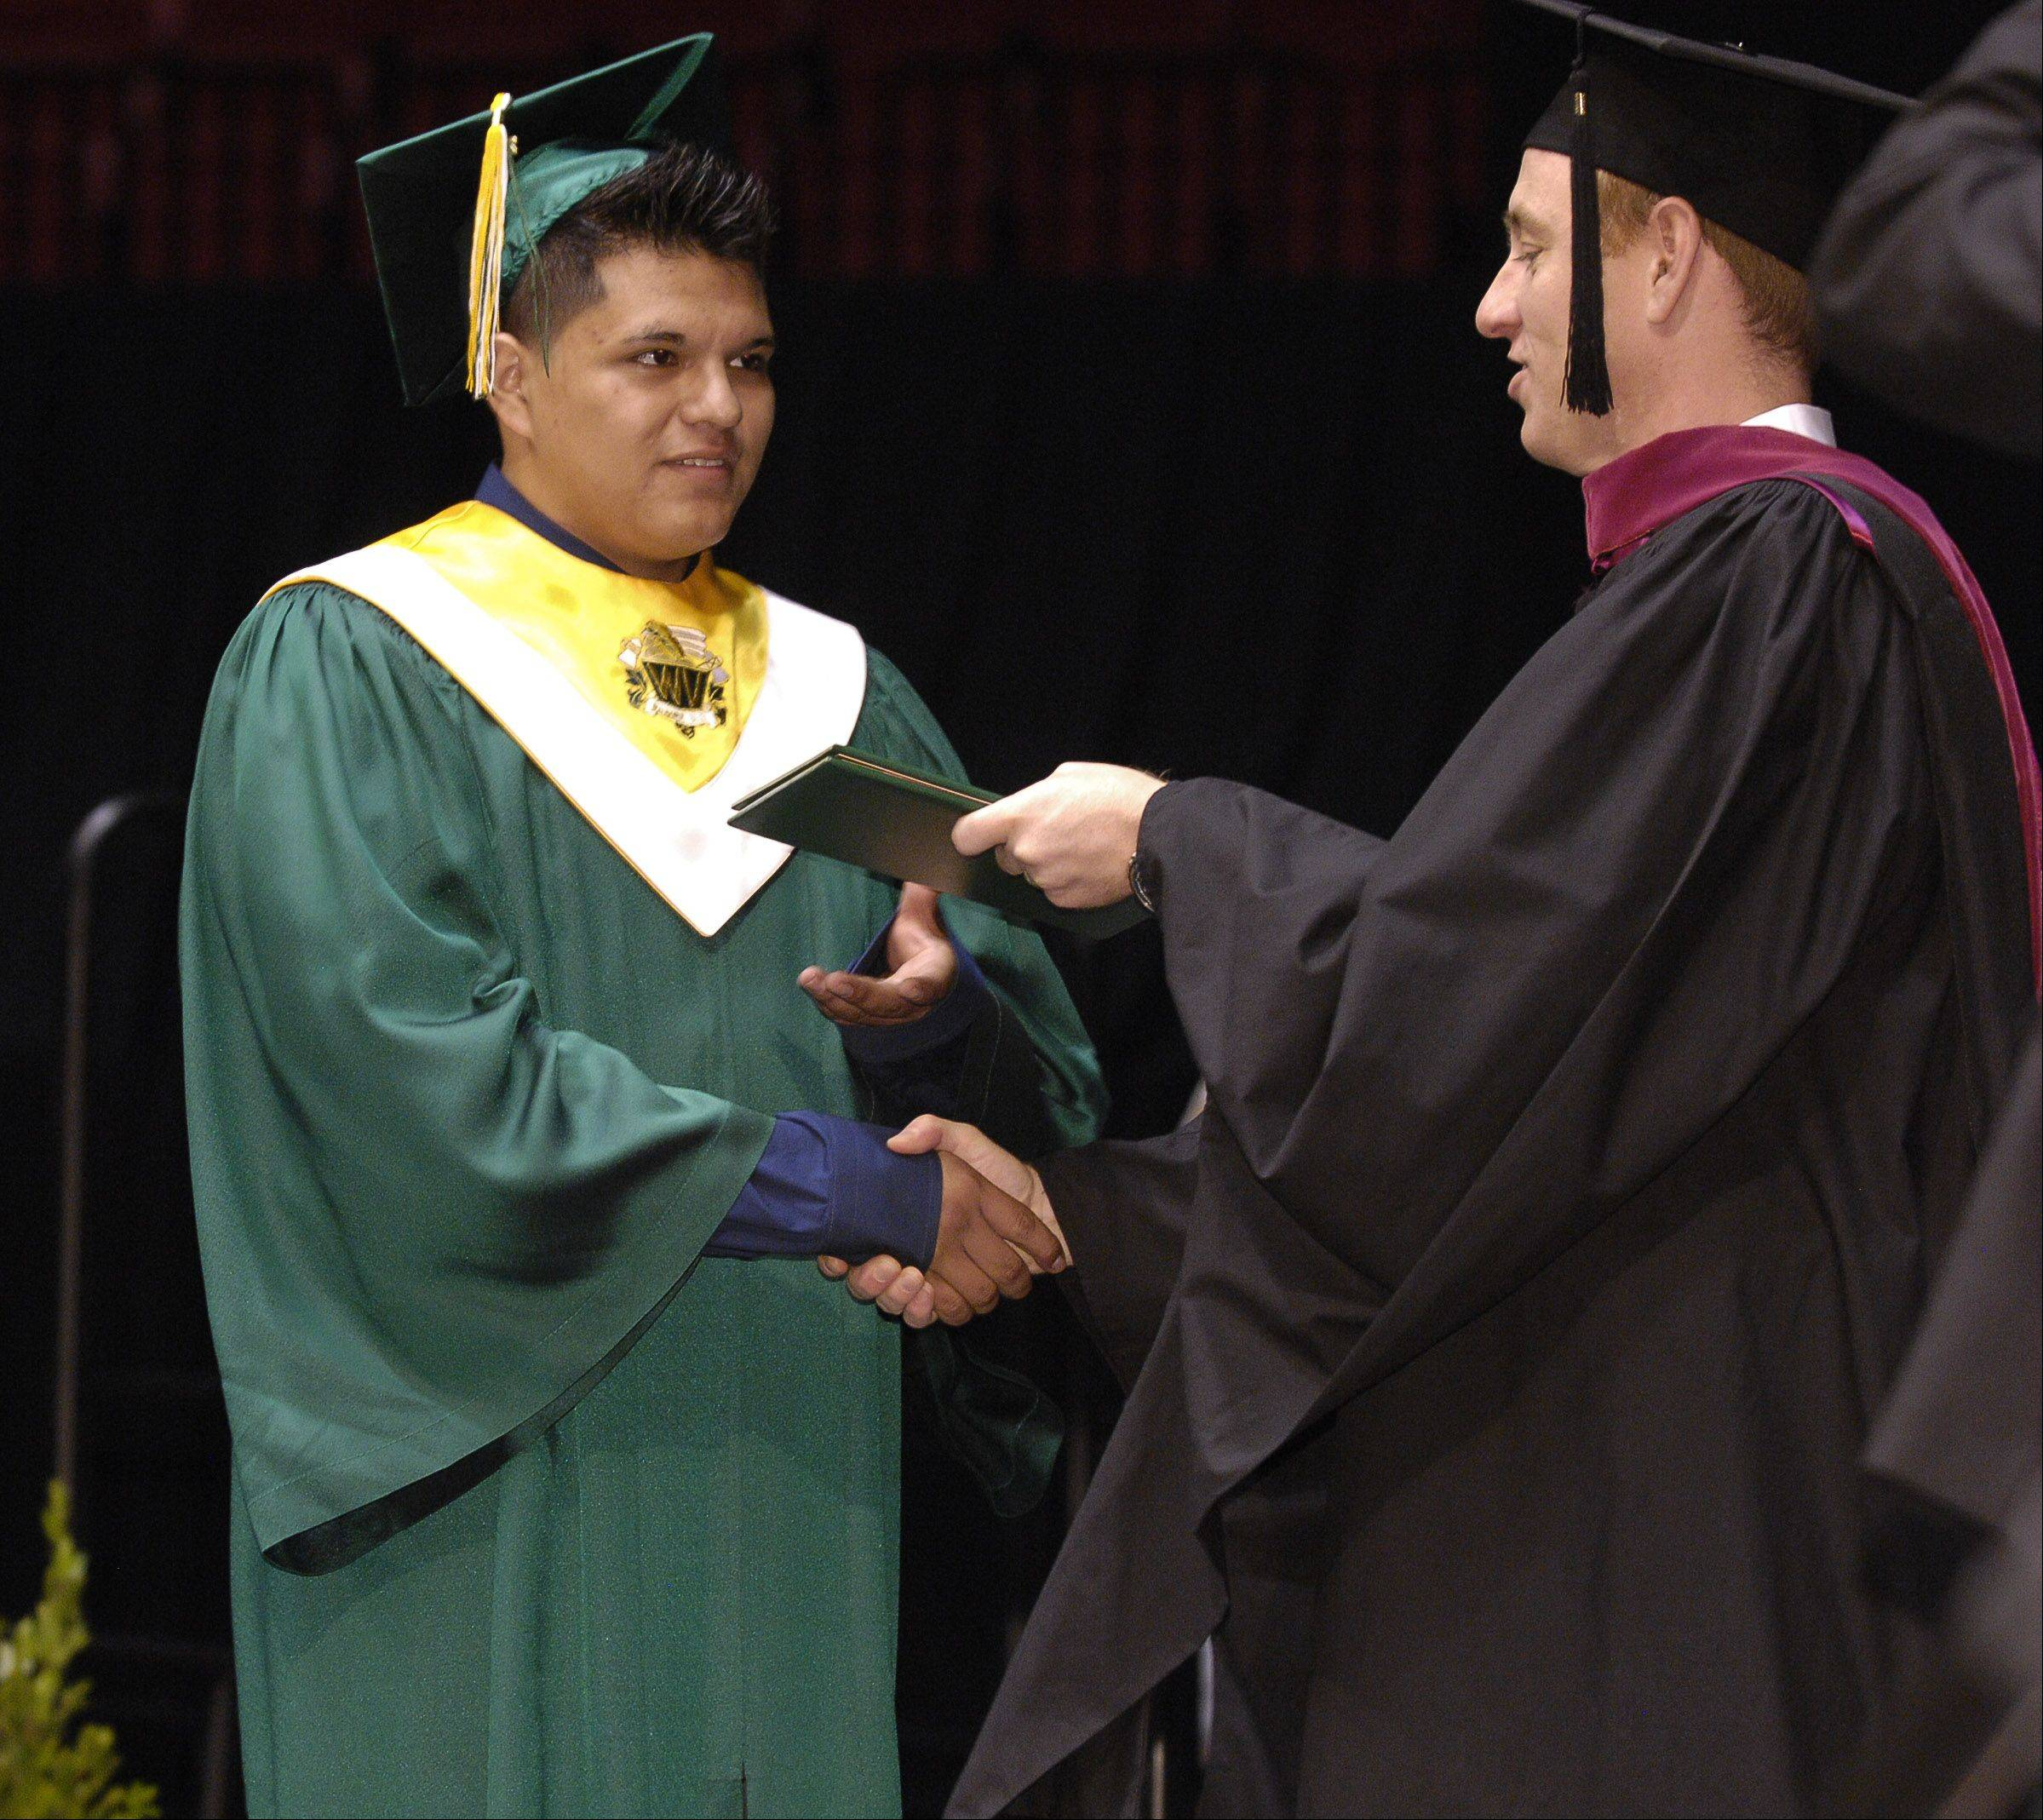 Waubonsie Valley High School held its graduation Sunday in DeKalb at NIU's Convocation Center.